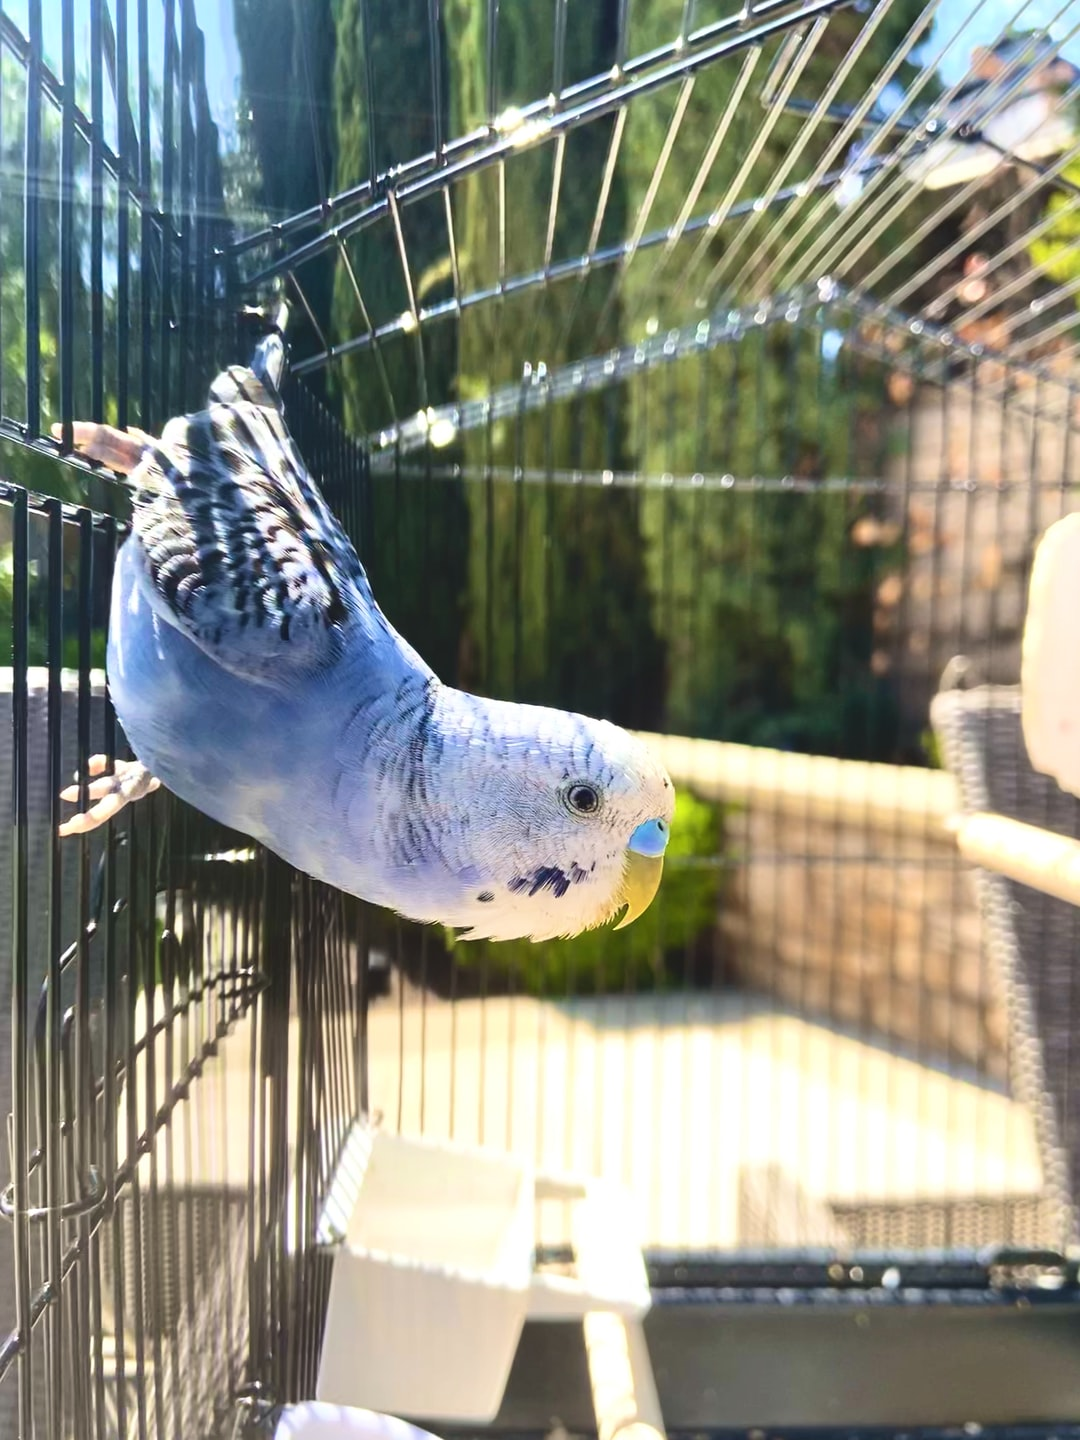 This is my budgie. He is outside enjoying the sun.